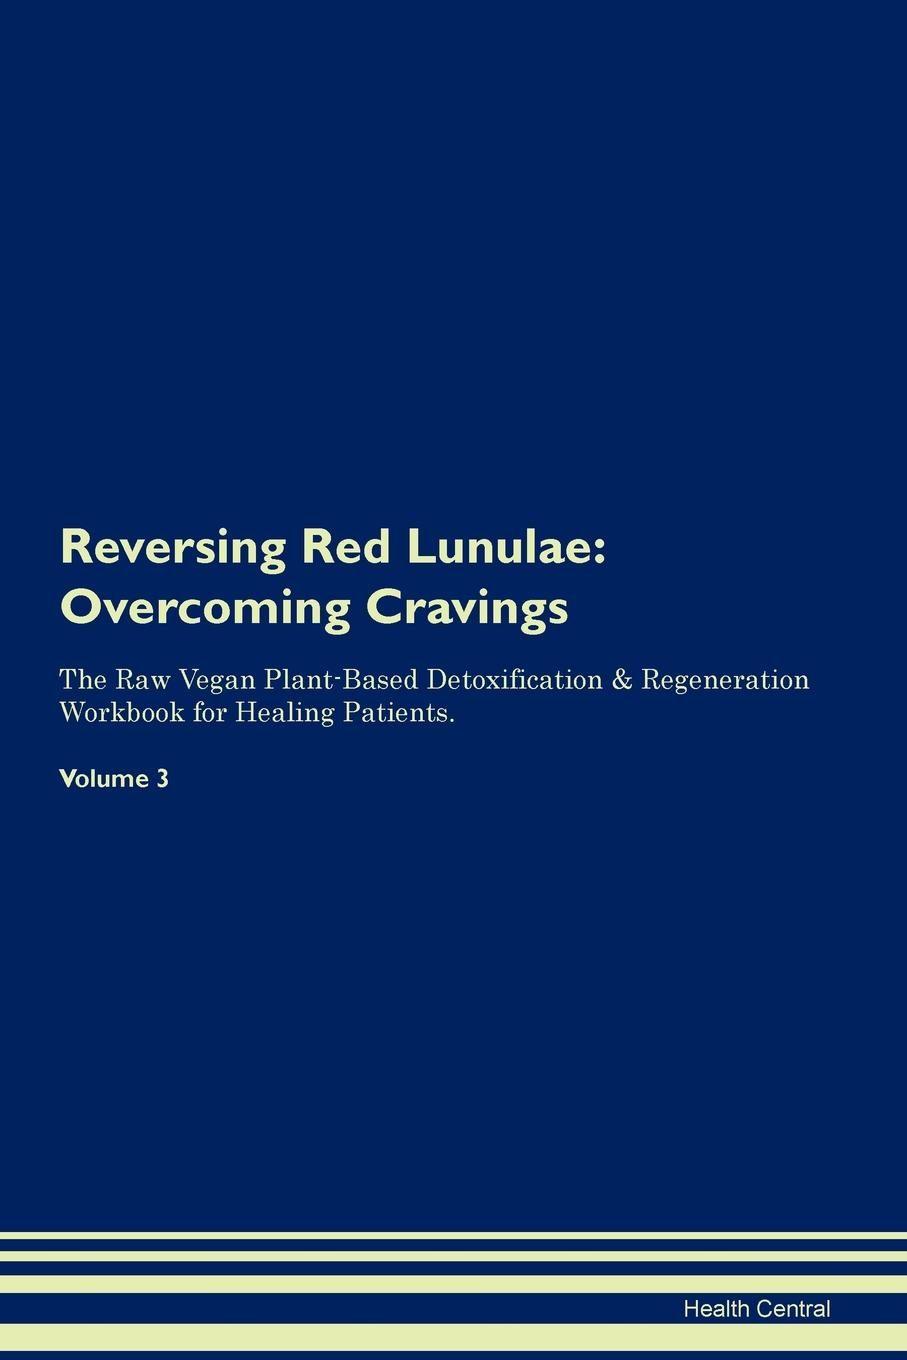 Health Central Reversing Red Lunulae. Overcoming Cravings The Raw Vegan Plant-Based Detoxification . Regeneration Workbook for Healing Patients. Volume 3